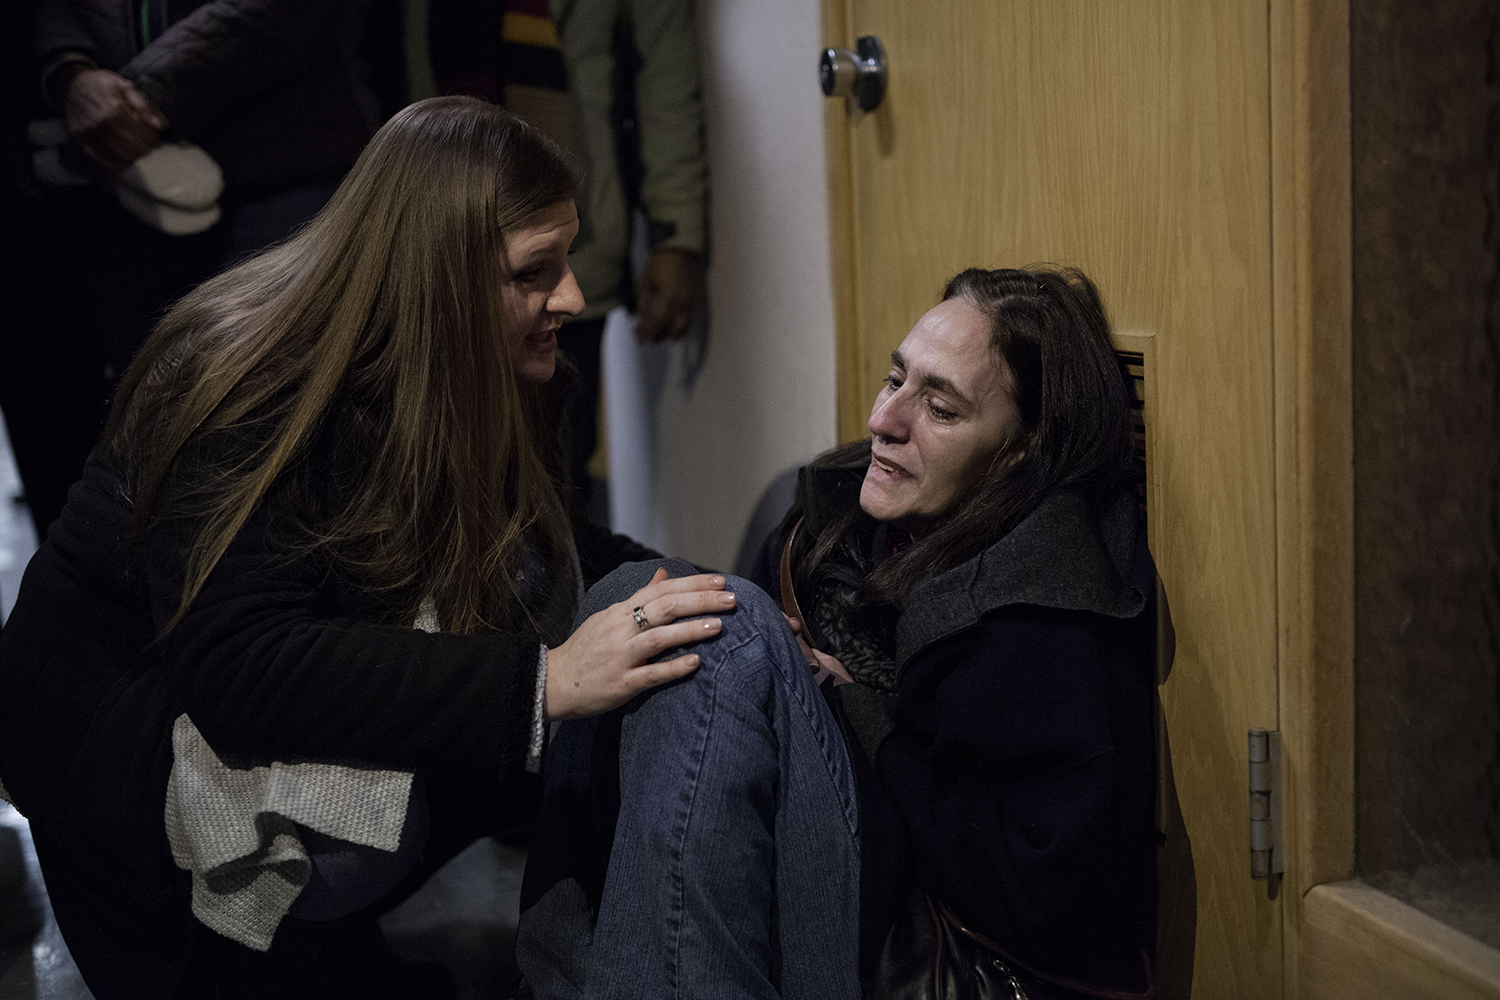 Melissa Mays, left, comforts Andrea Watson, right, both from flint, while they wait outside of the conference room the Flint water criss press conference on Monday, Jan. 11, 2016 at City Hall in Flint. Flint residents gathered at City Hall to voice their disdain with the water crisis. Tim Galloway for The Detroit Free Press